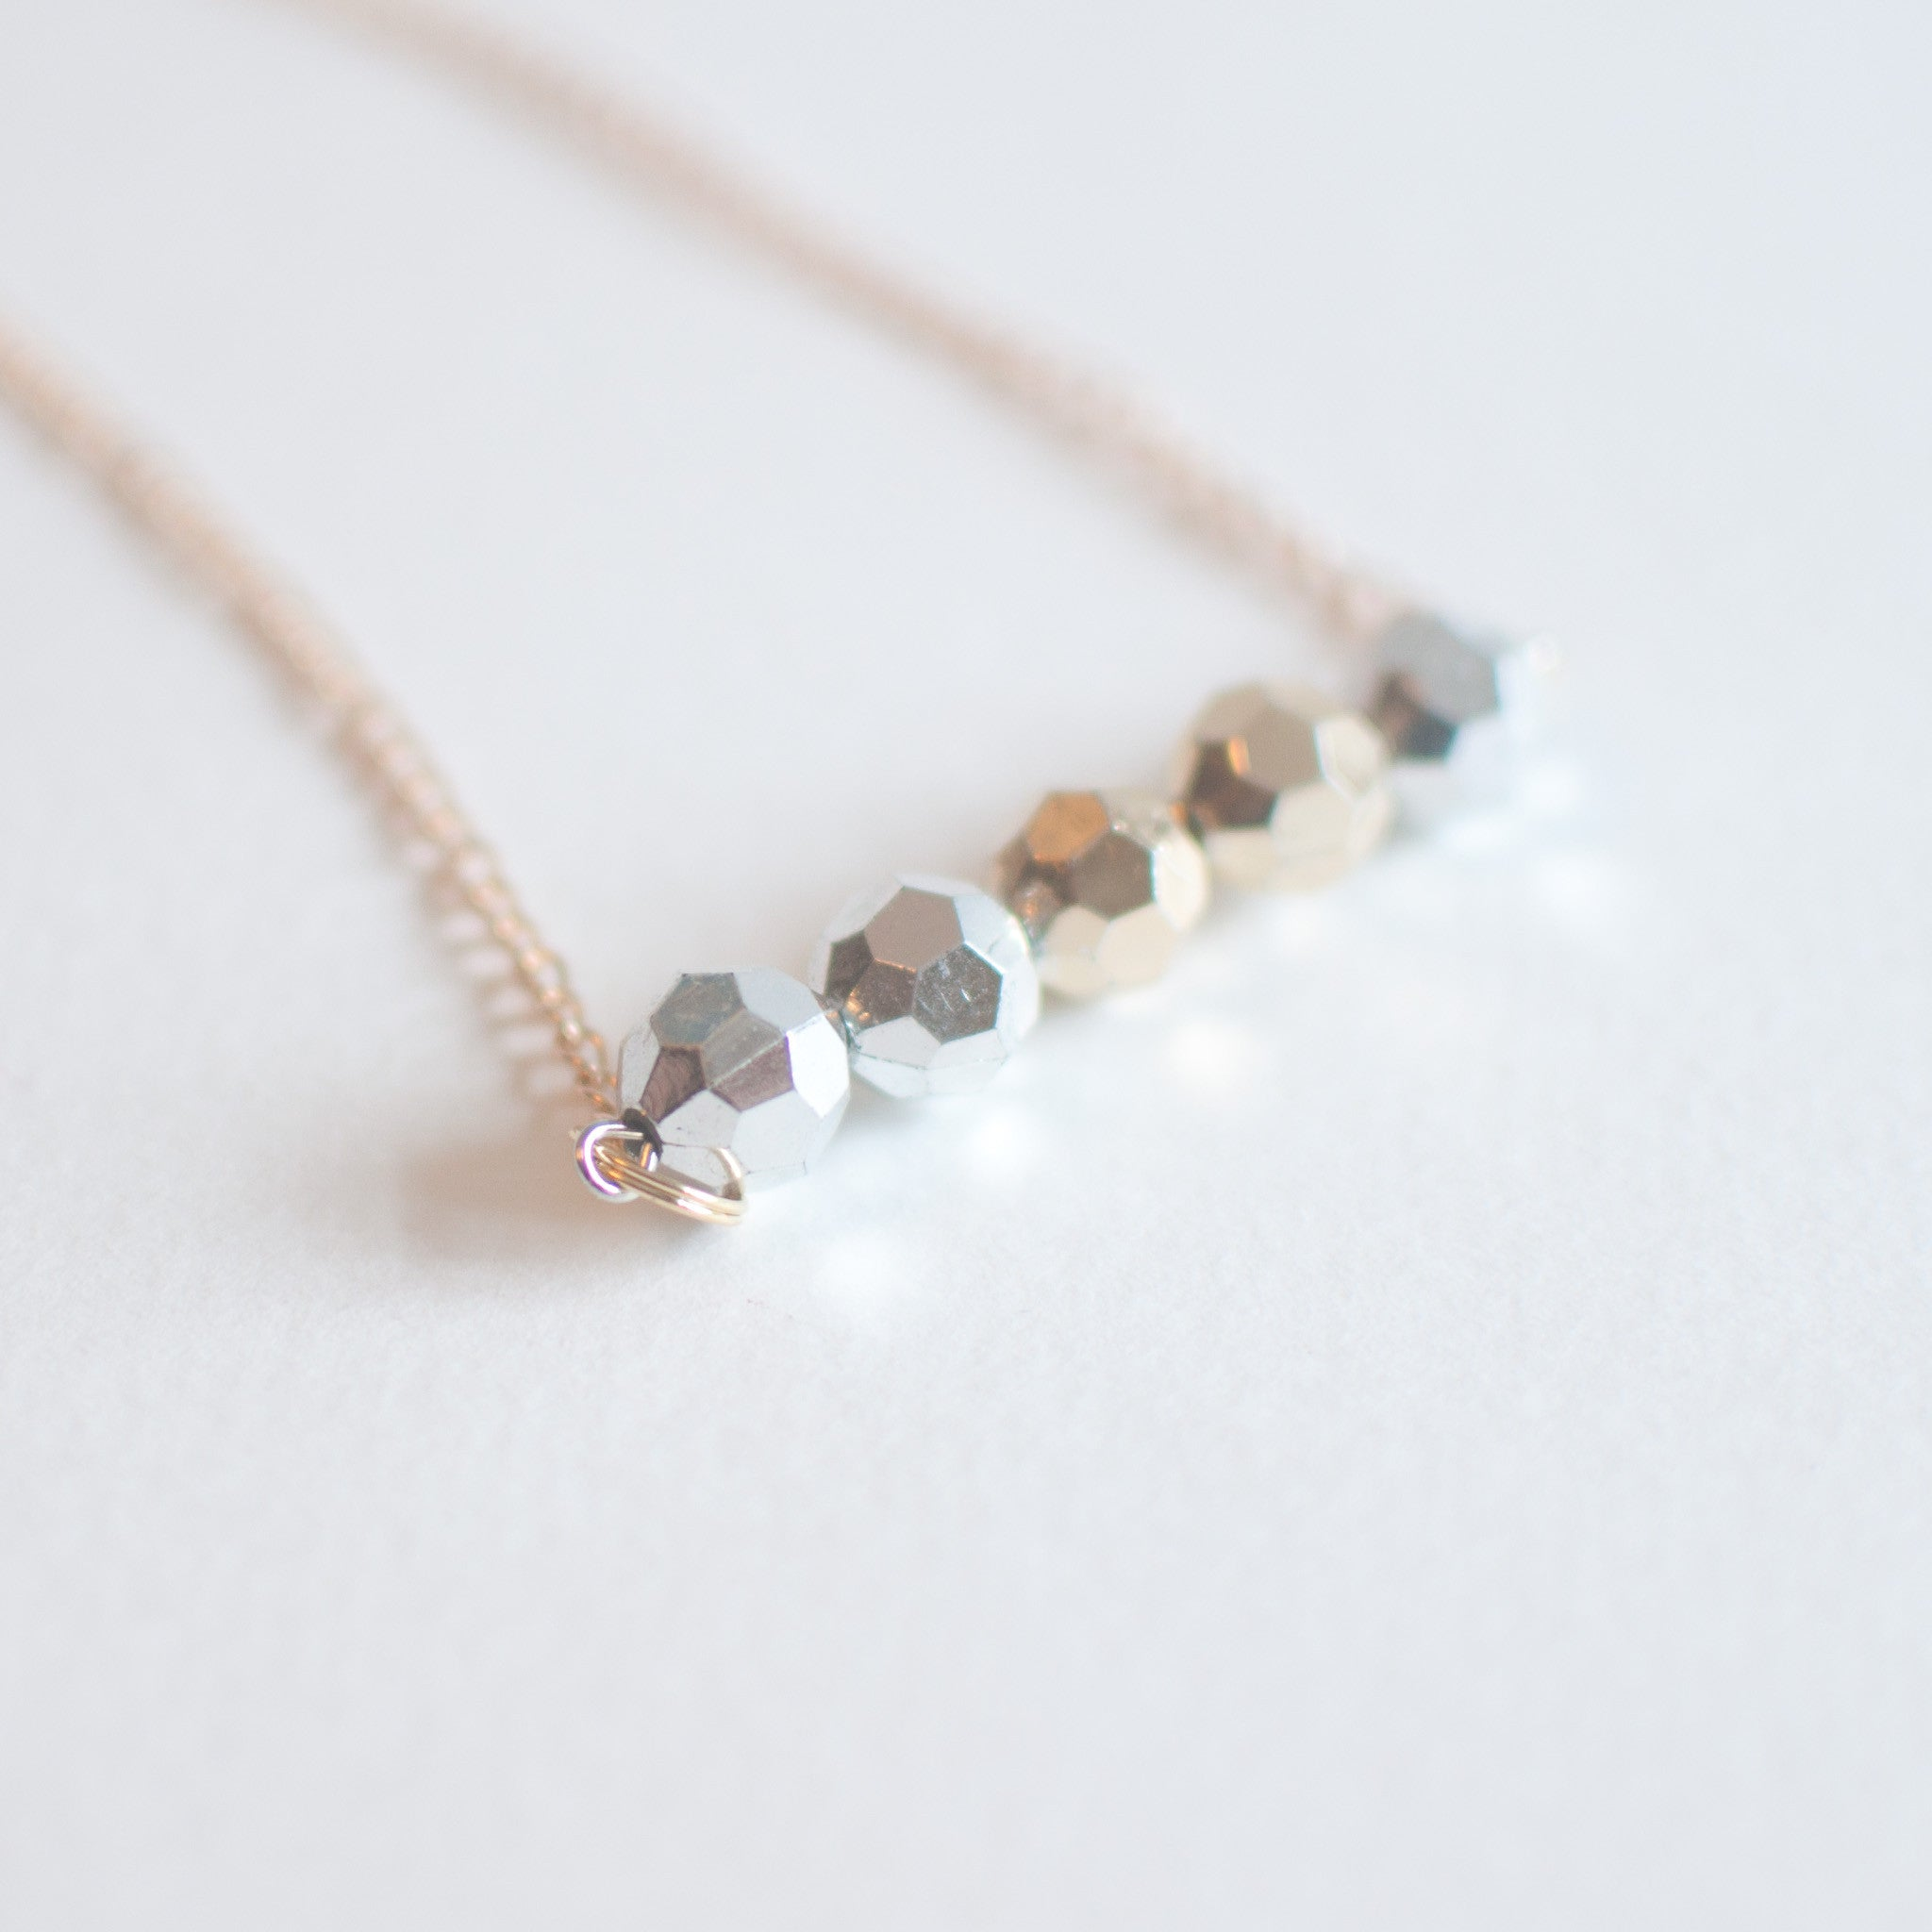 Disco Beads Pendant Necklace - sanwaitsai